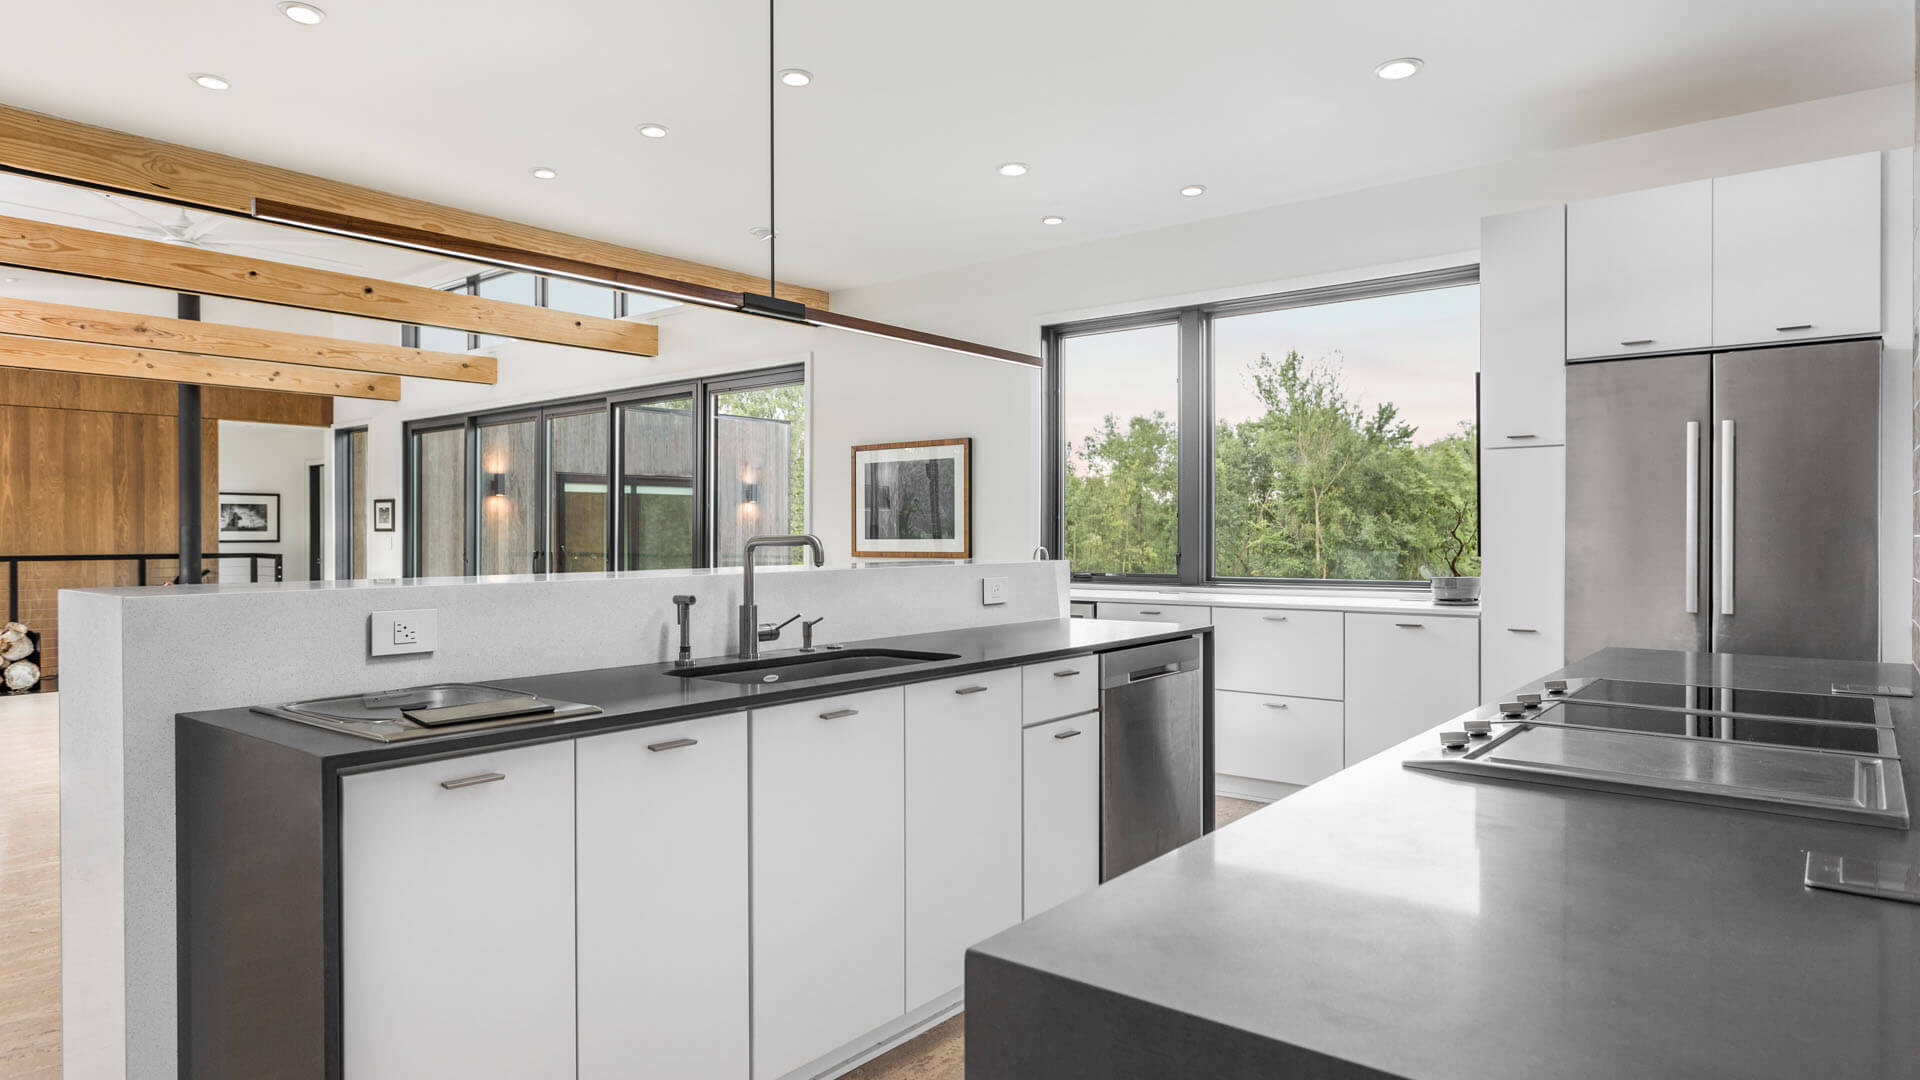 New Modern House 1 - Open Concept Kitchen - Christopher Short, Architect, Indianapolis, HAUS Architecture